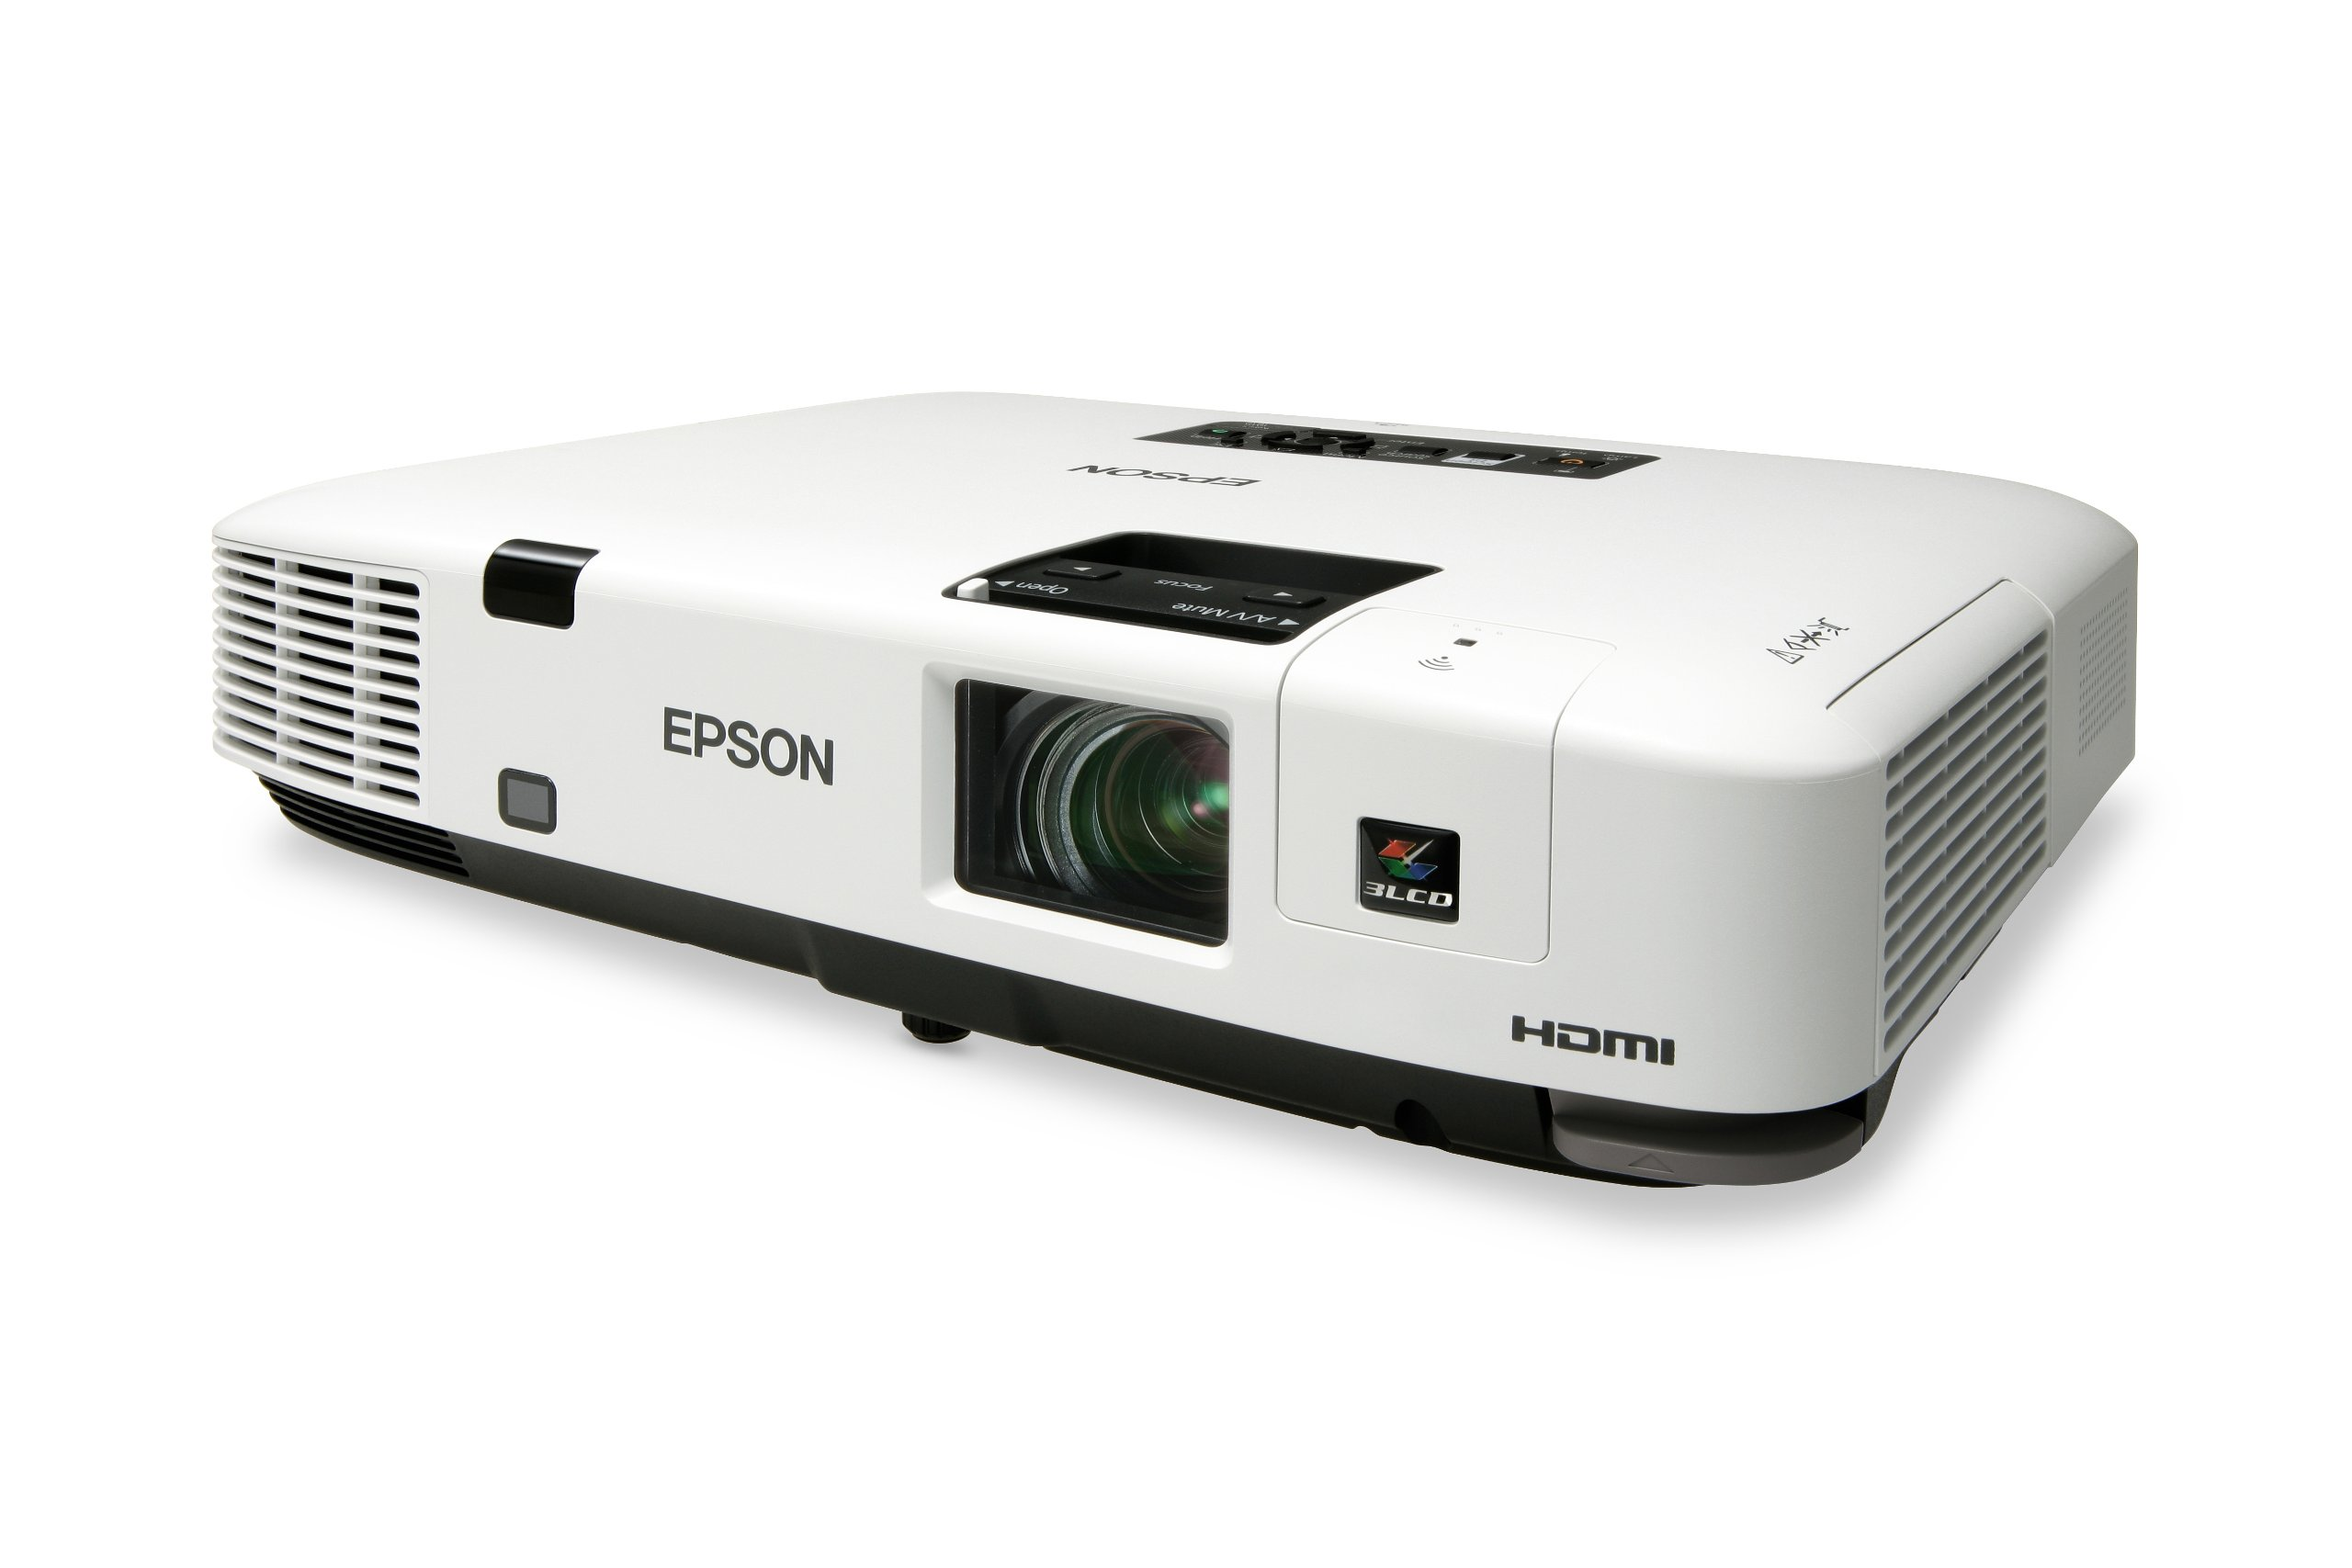 Epson PowerLite 1915 Business Projector (XGA Resolution 1024x768) (V11H313020) by Epson